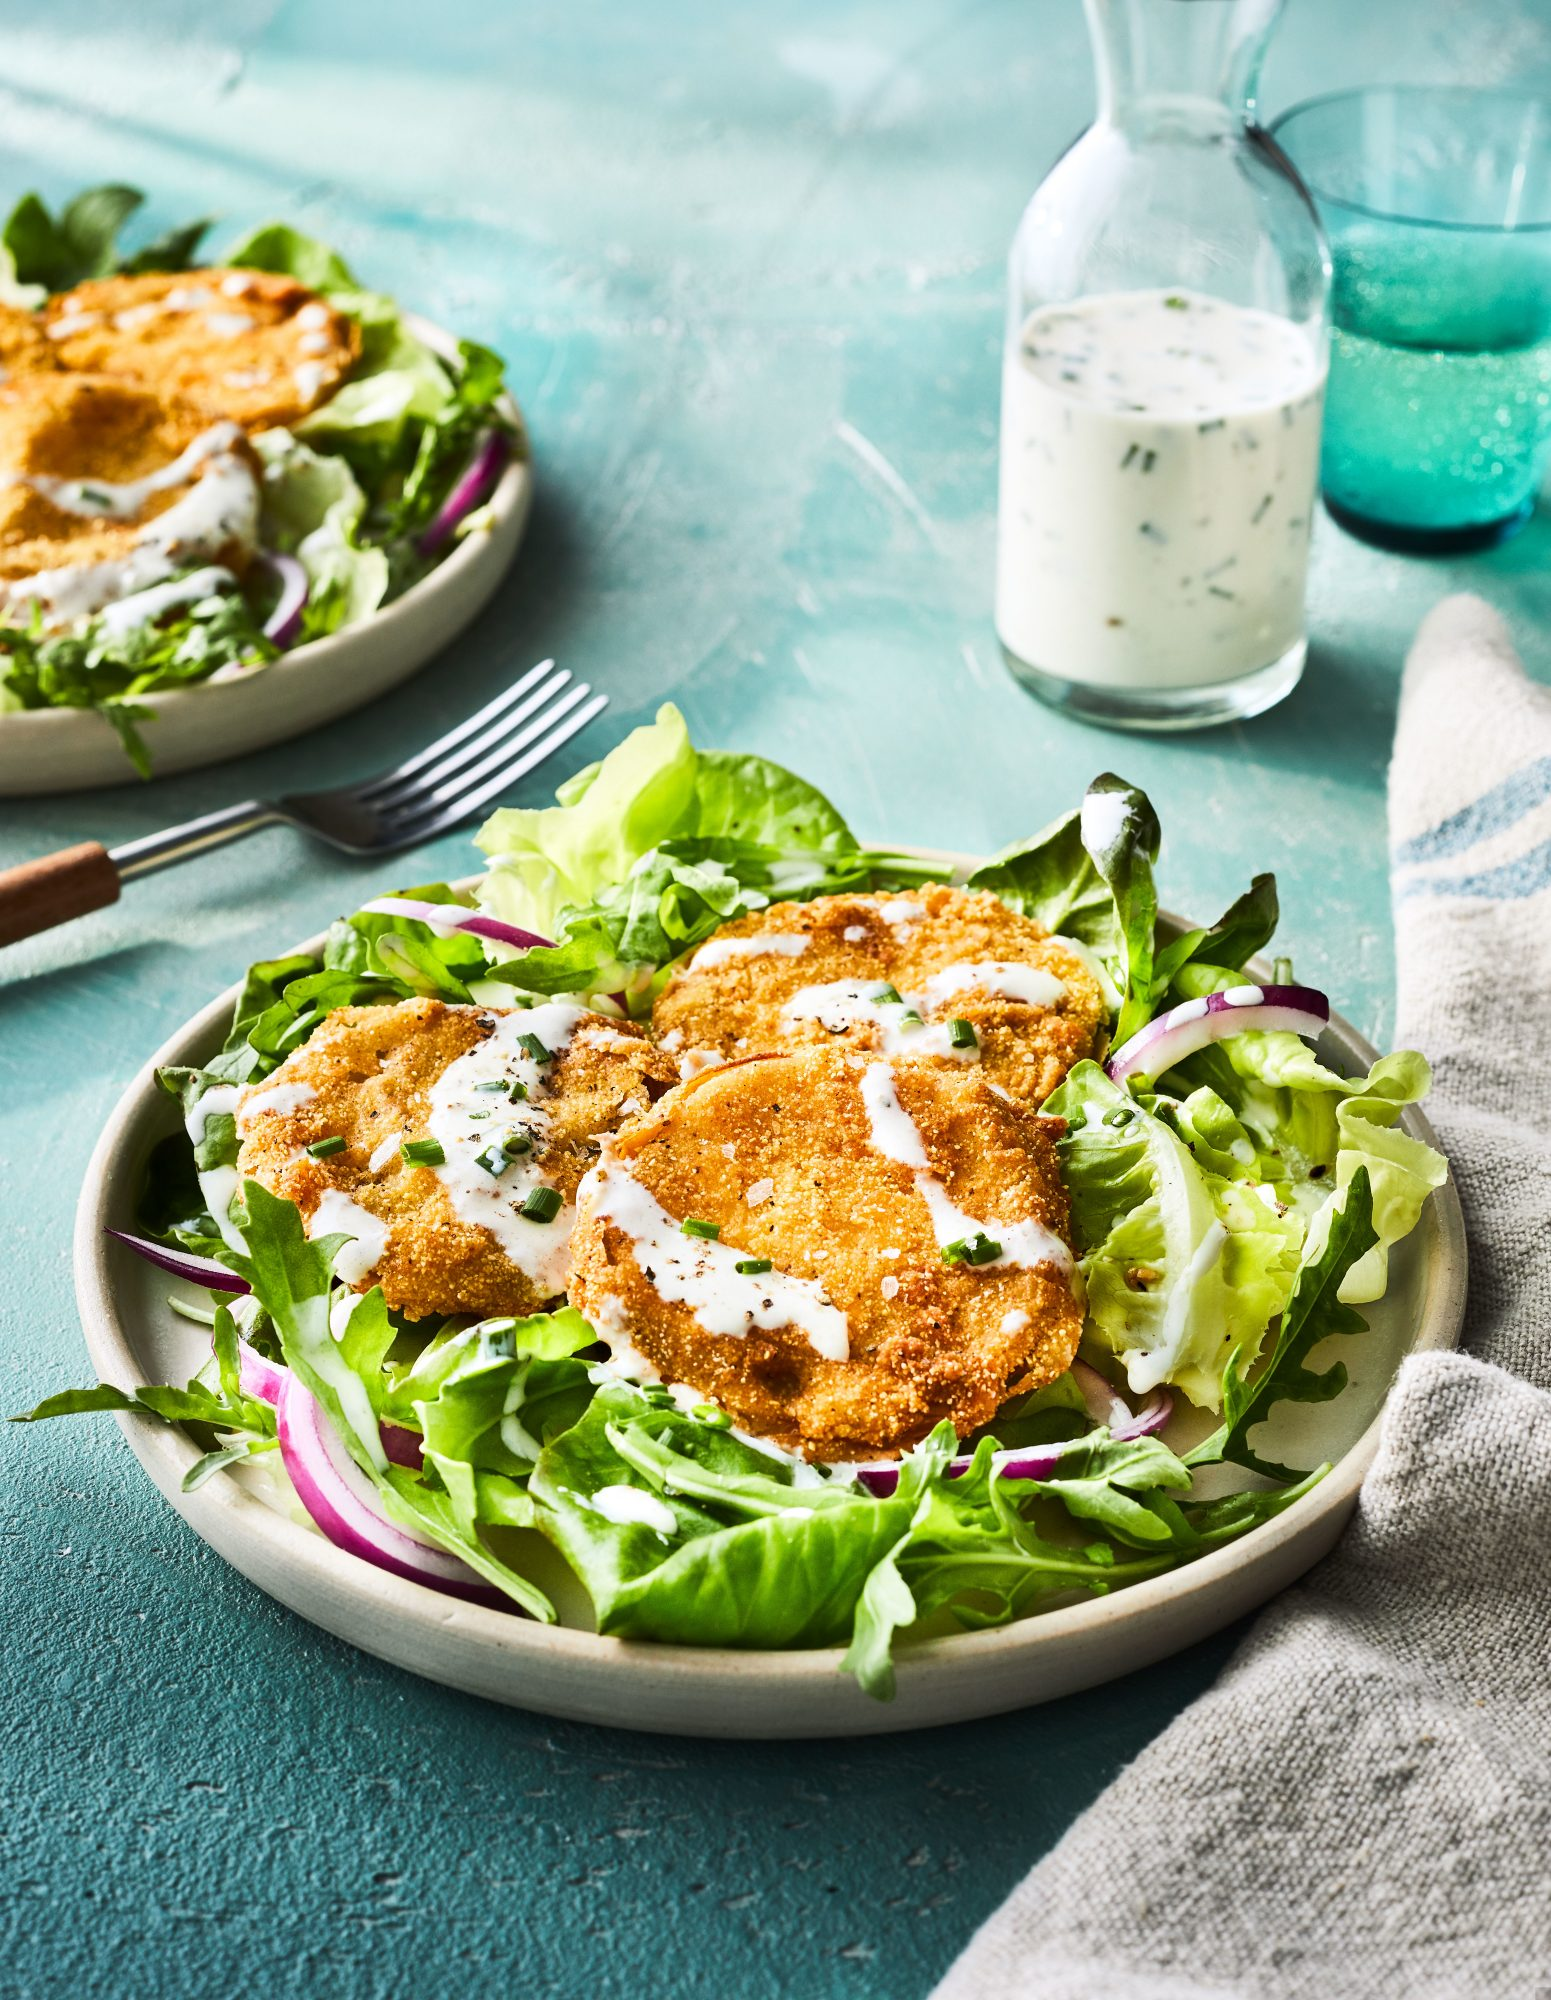 Fried Green Tomato Salad with Buttermilk Dressing